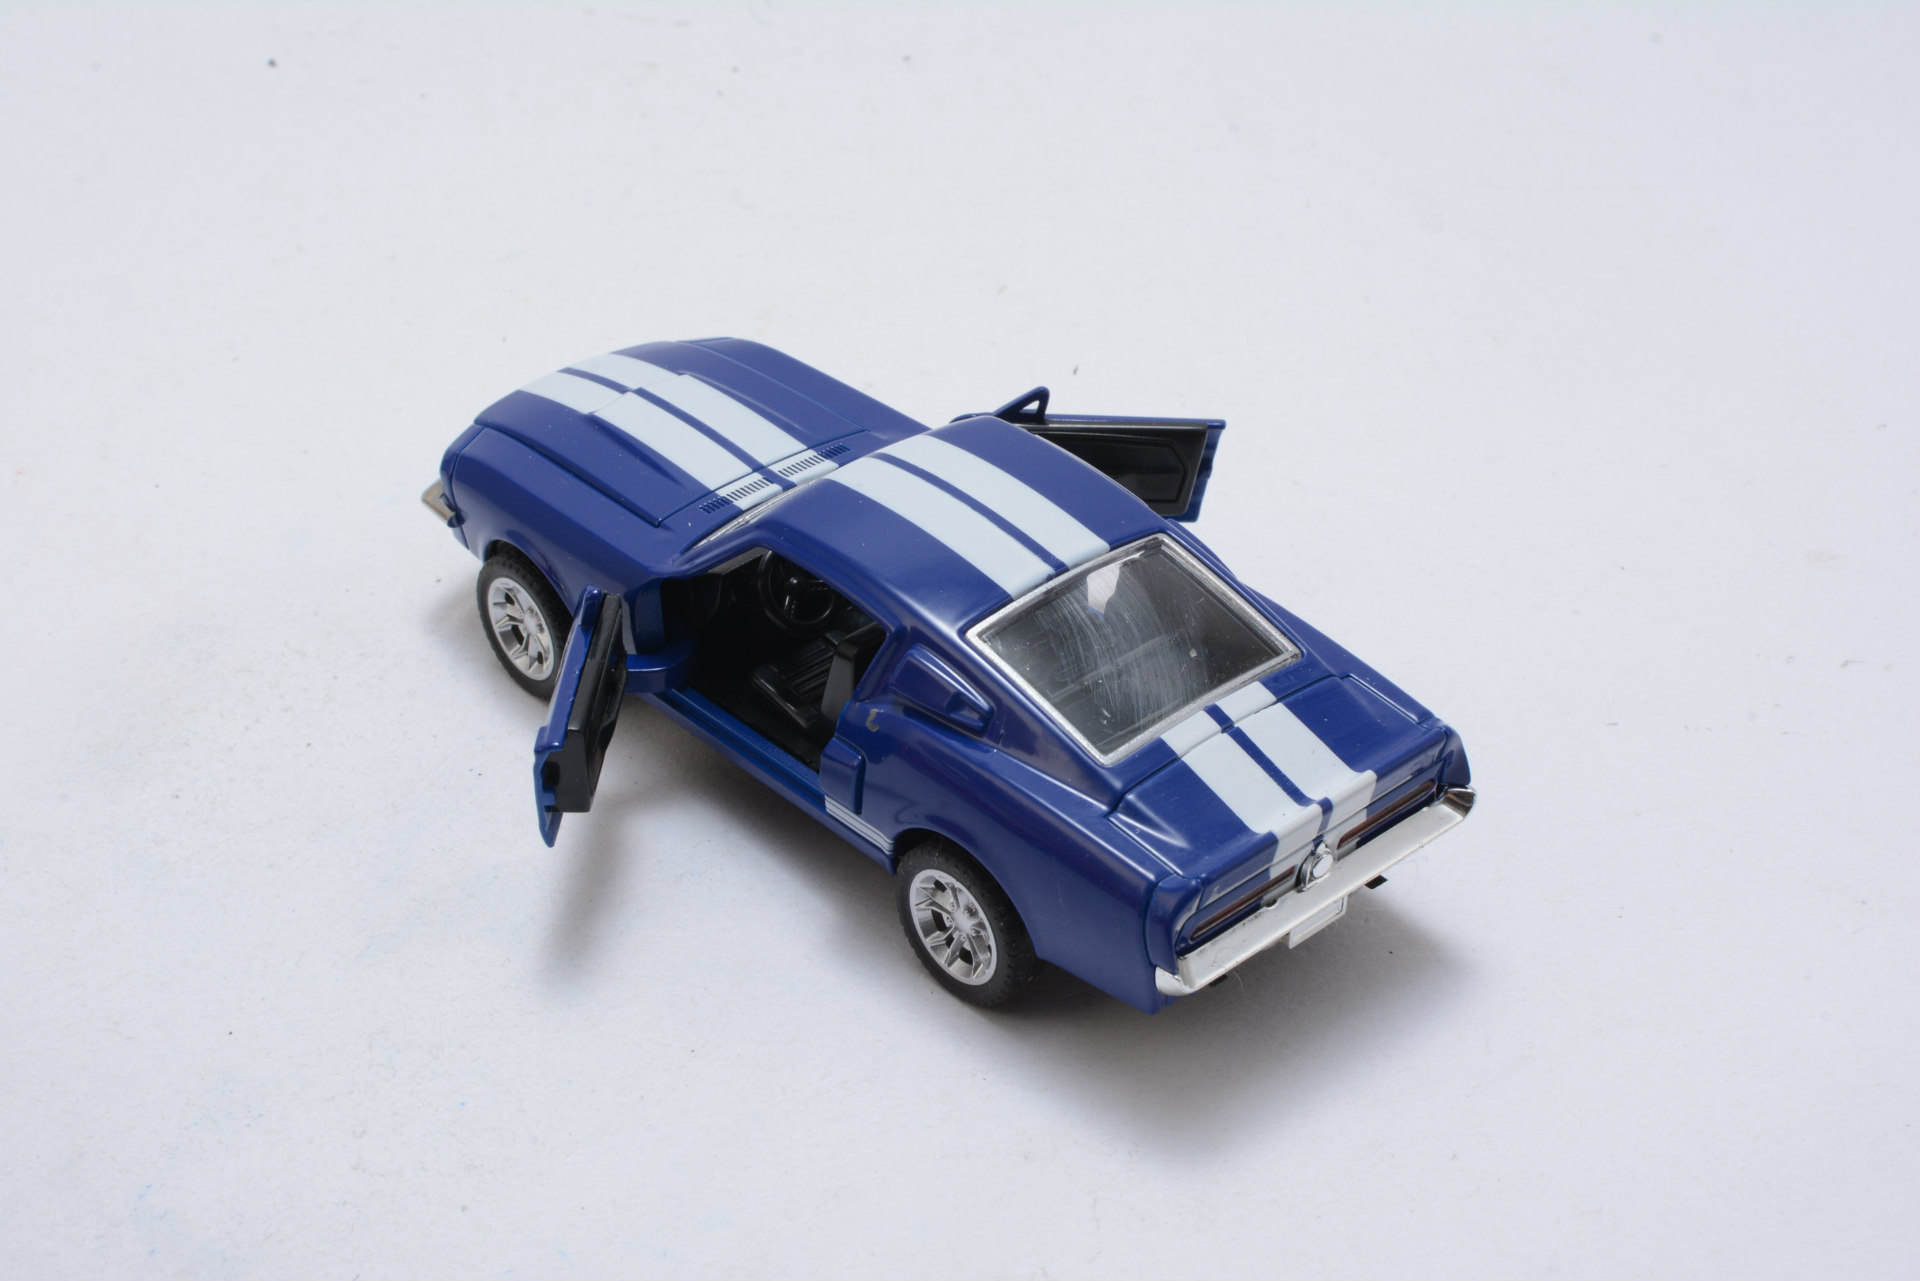 Ford Mustang GT 1967 GT500 Toy Car 13x5x35cm 16